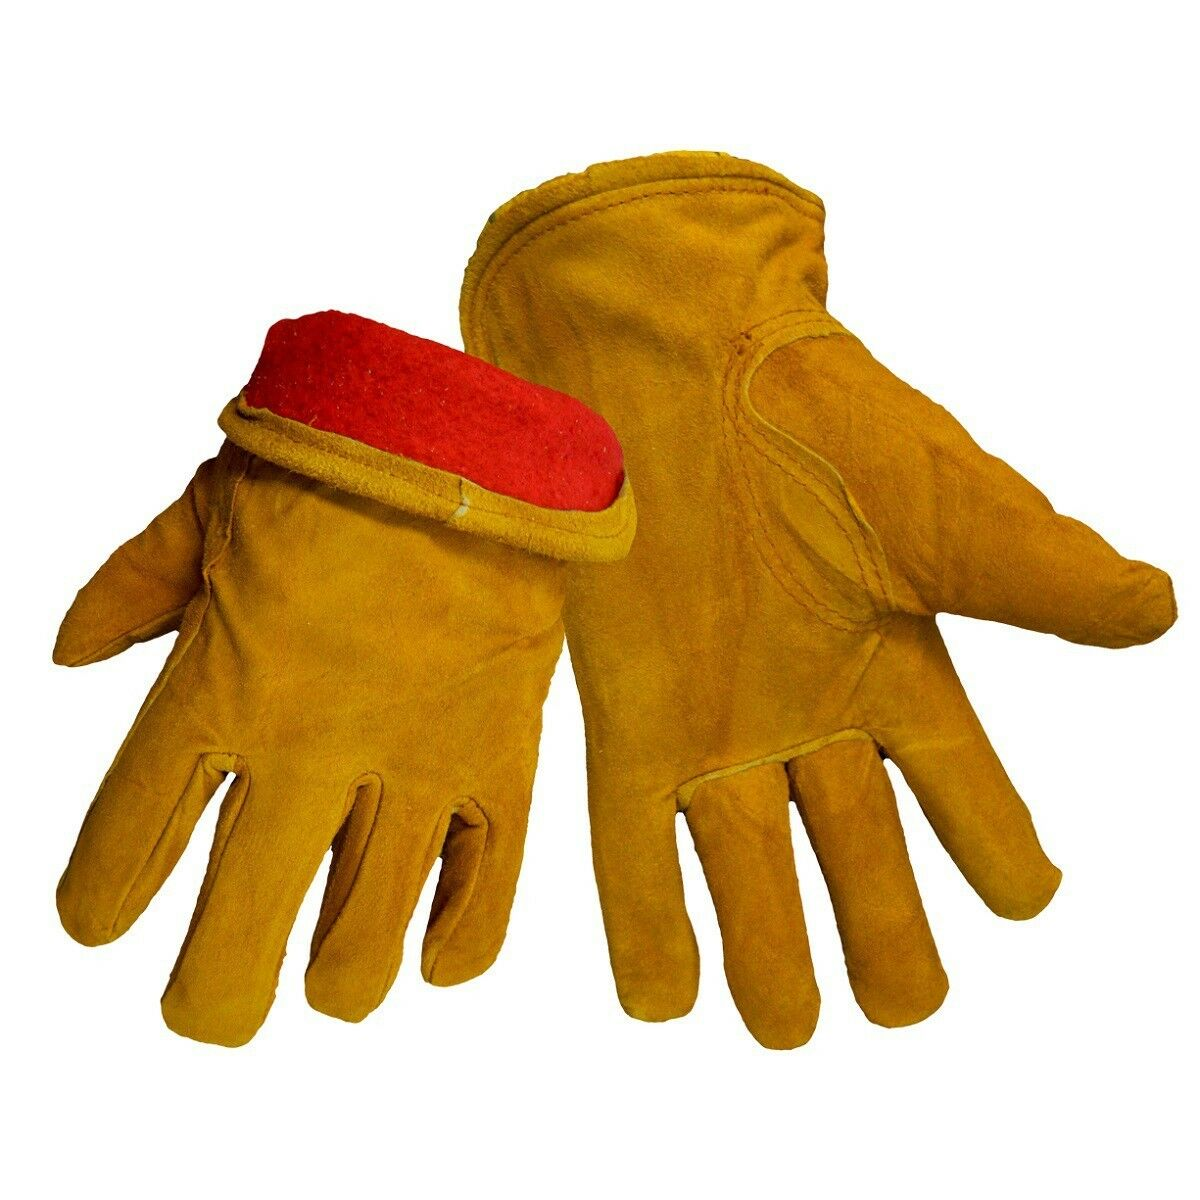 12 Pairs Global Glove Split Cow Leather Work Gloves With